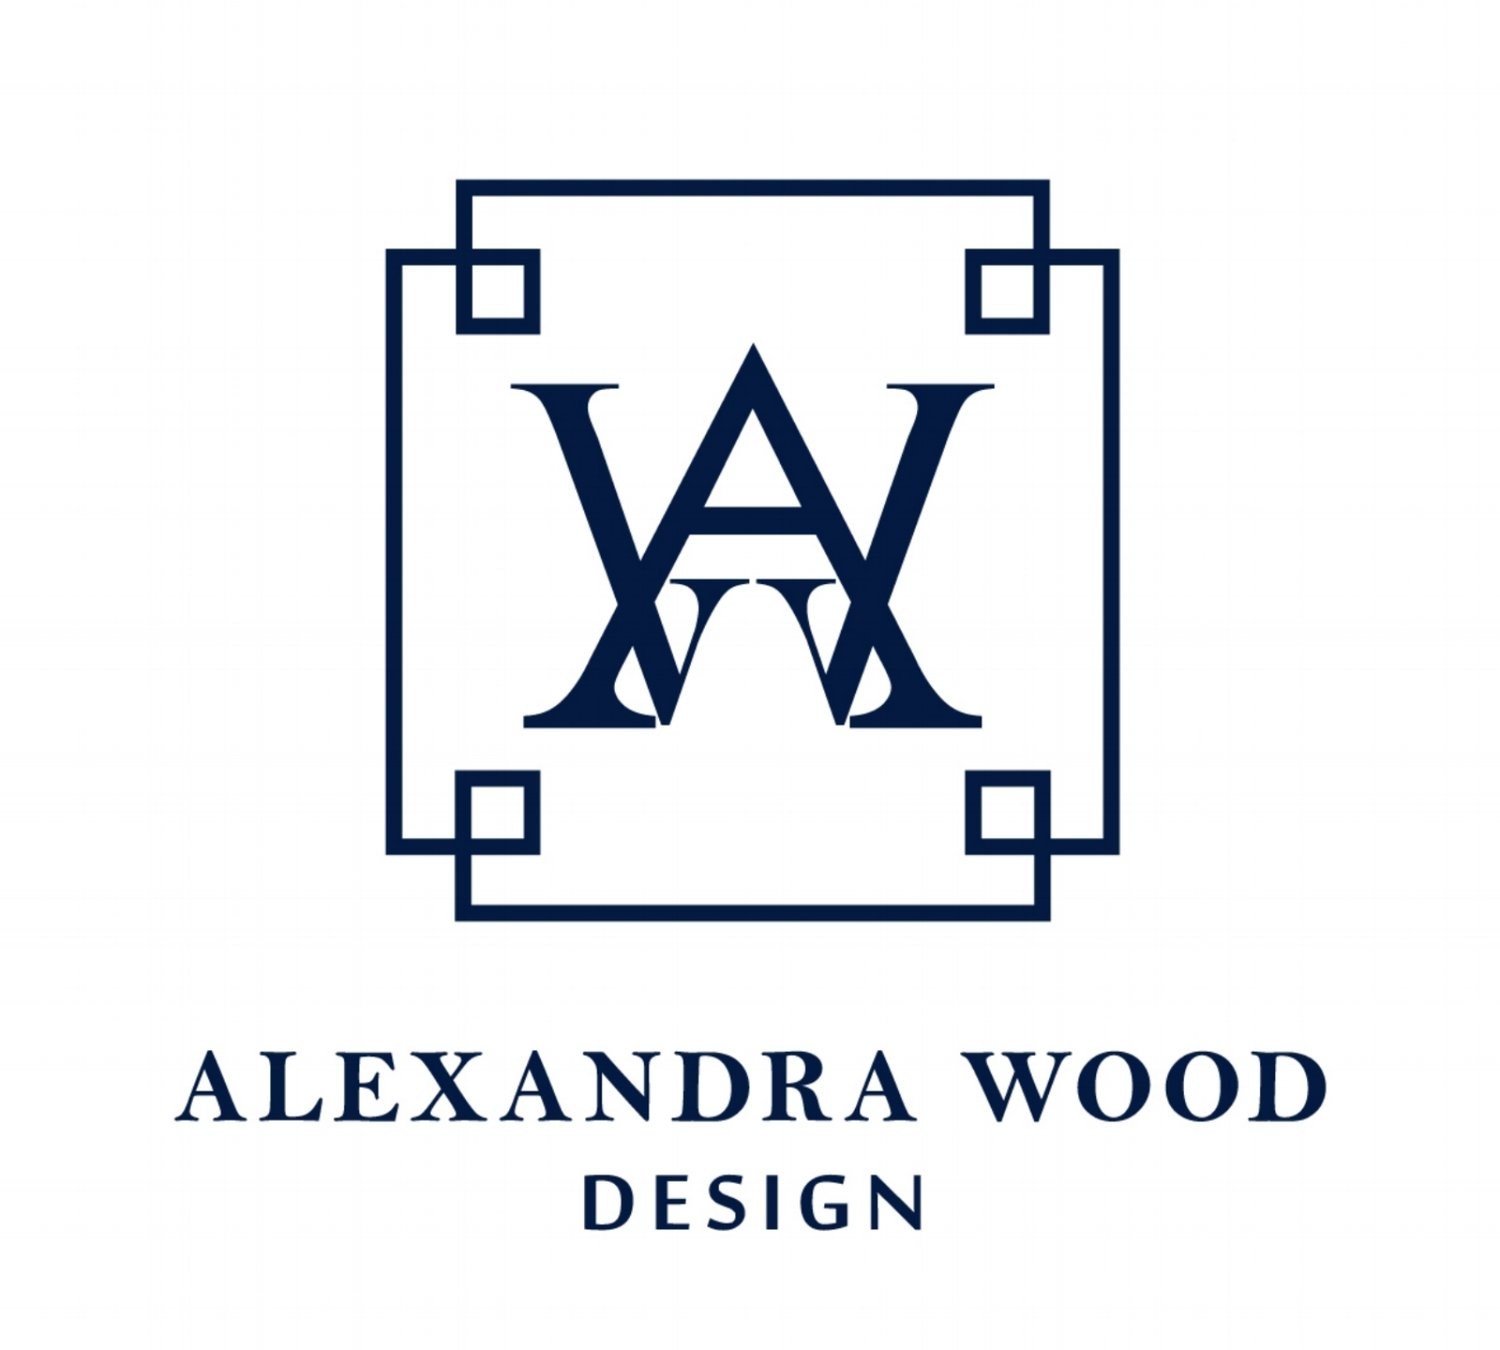 Alexandra Wood Design